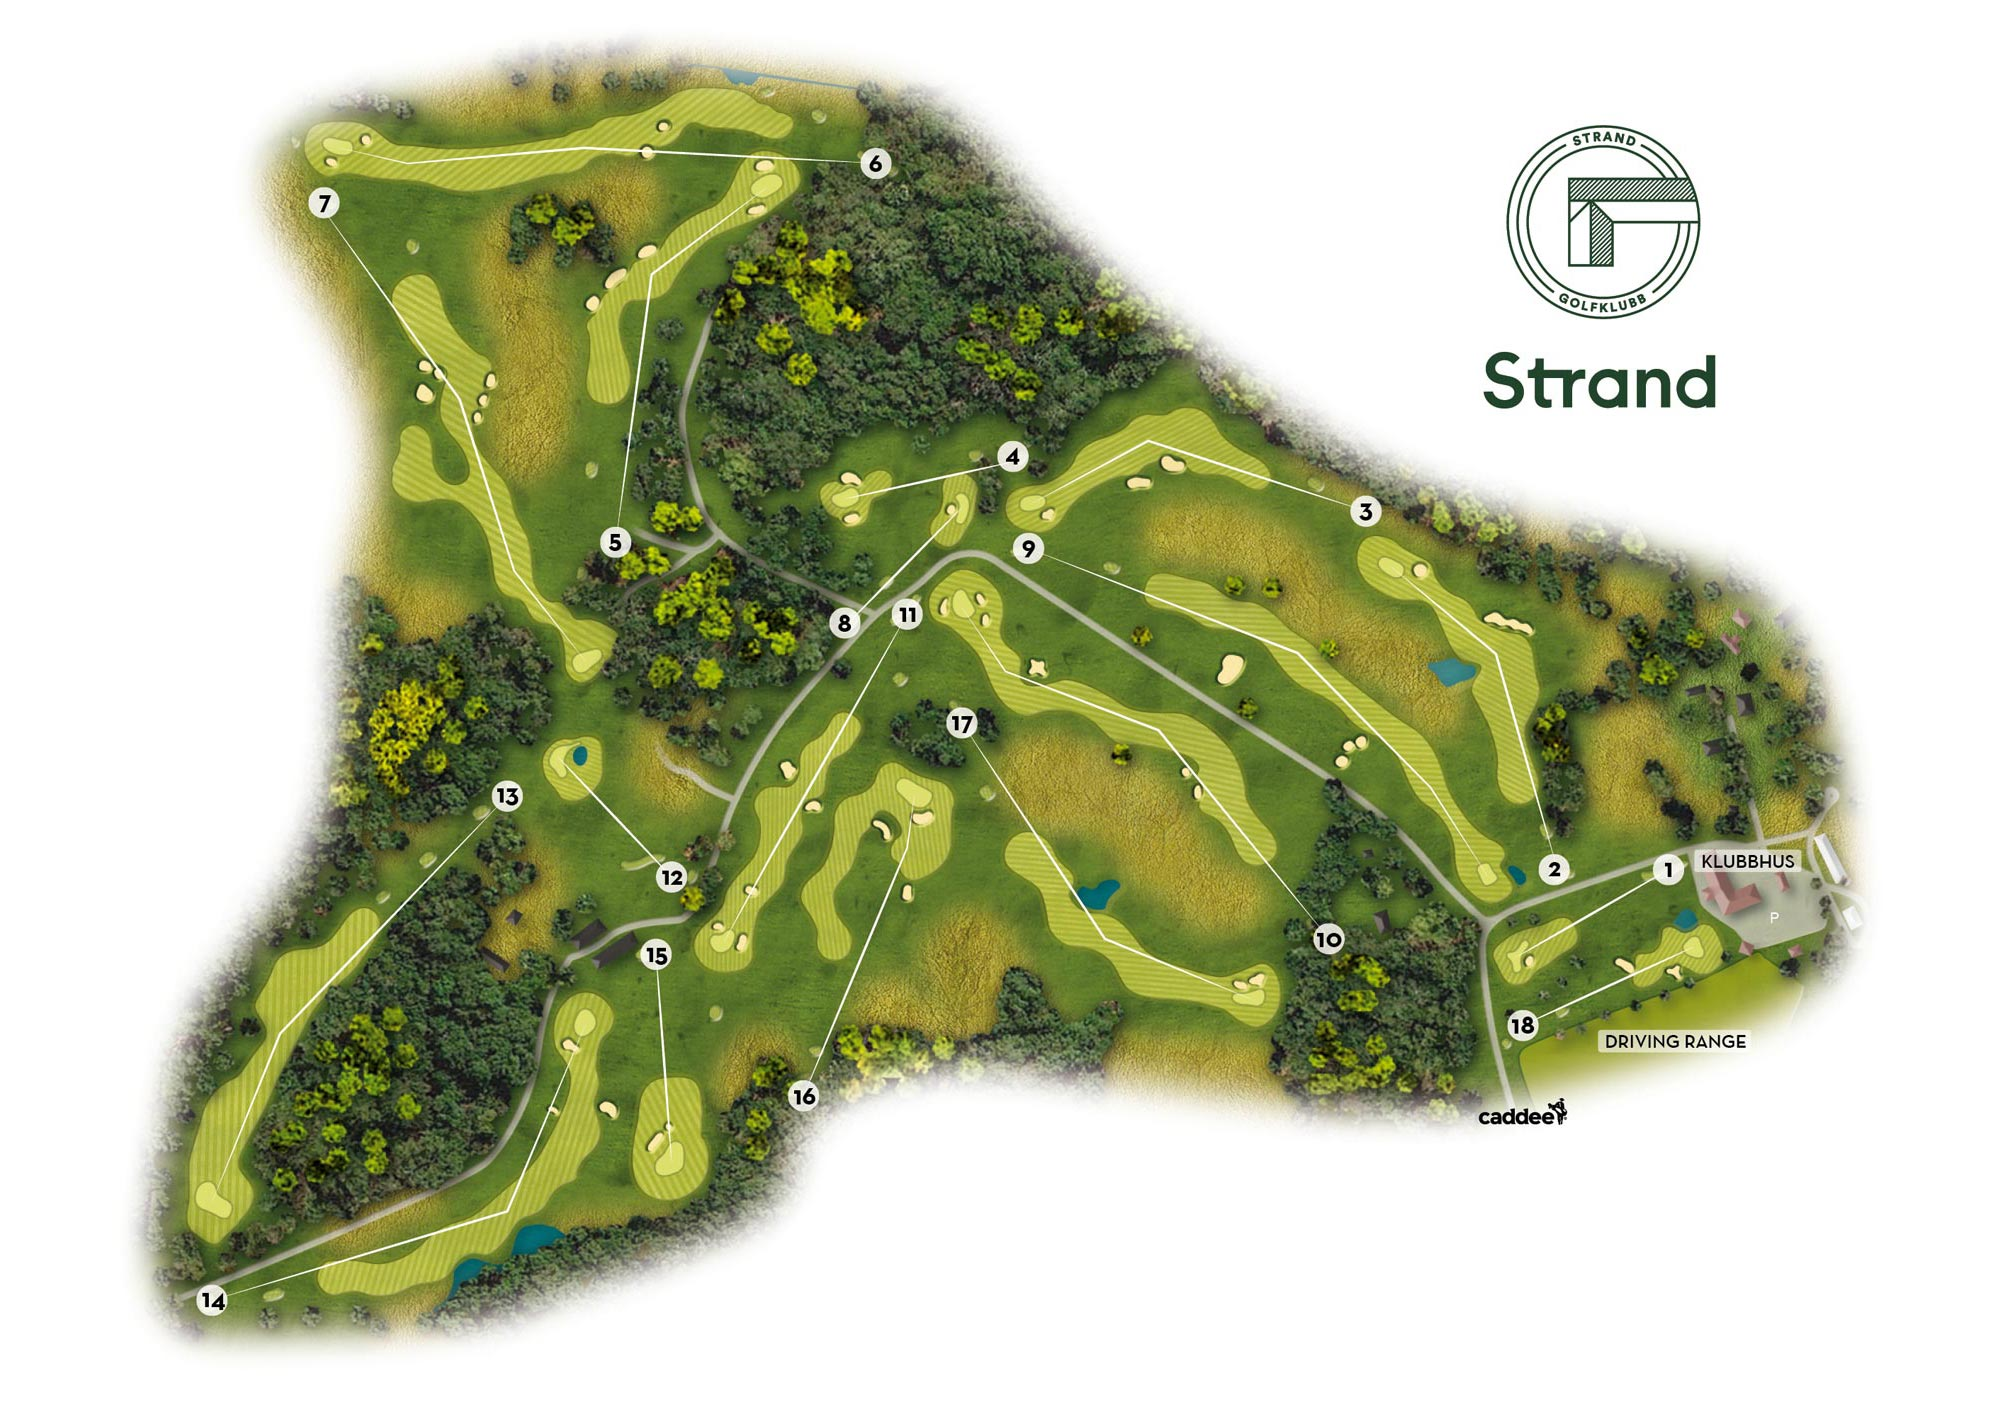 Strand Golf Course Map